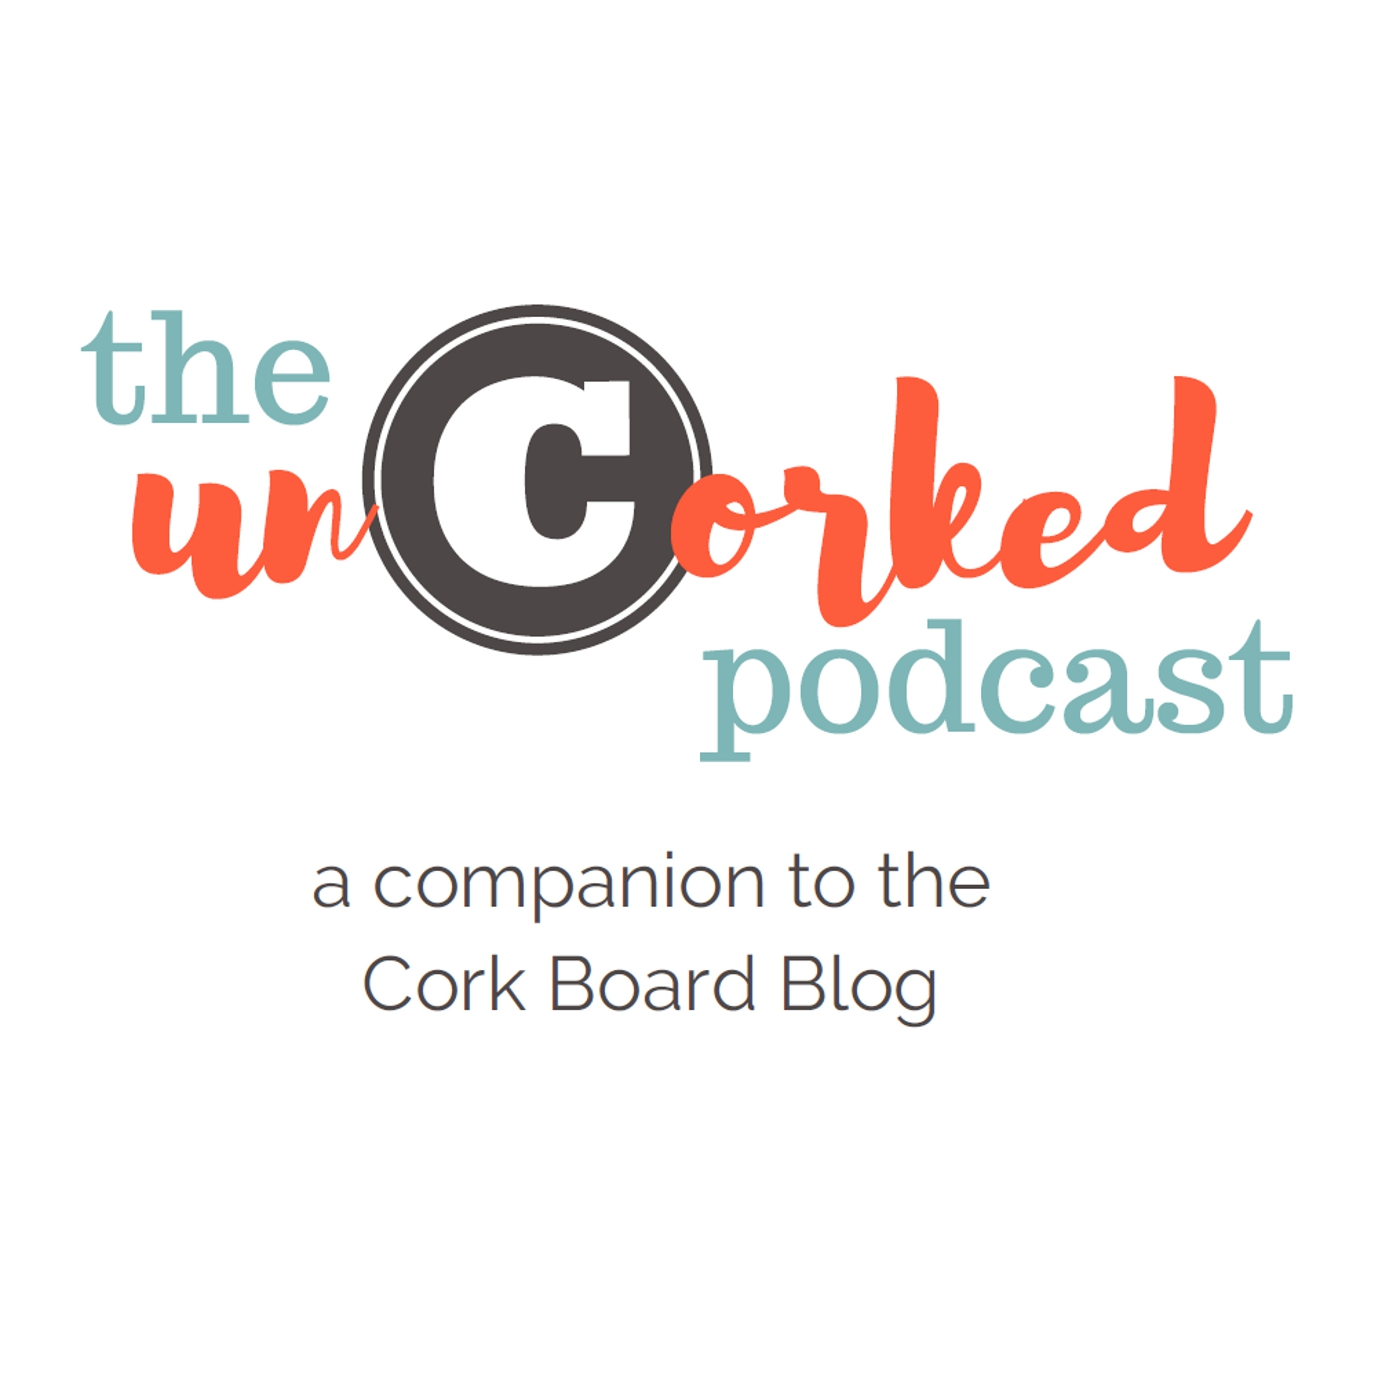 uncorked podcast storytelling